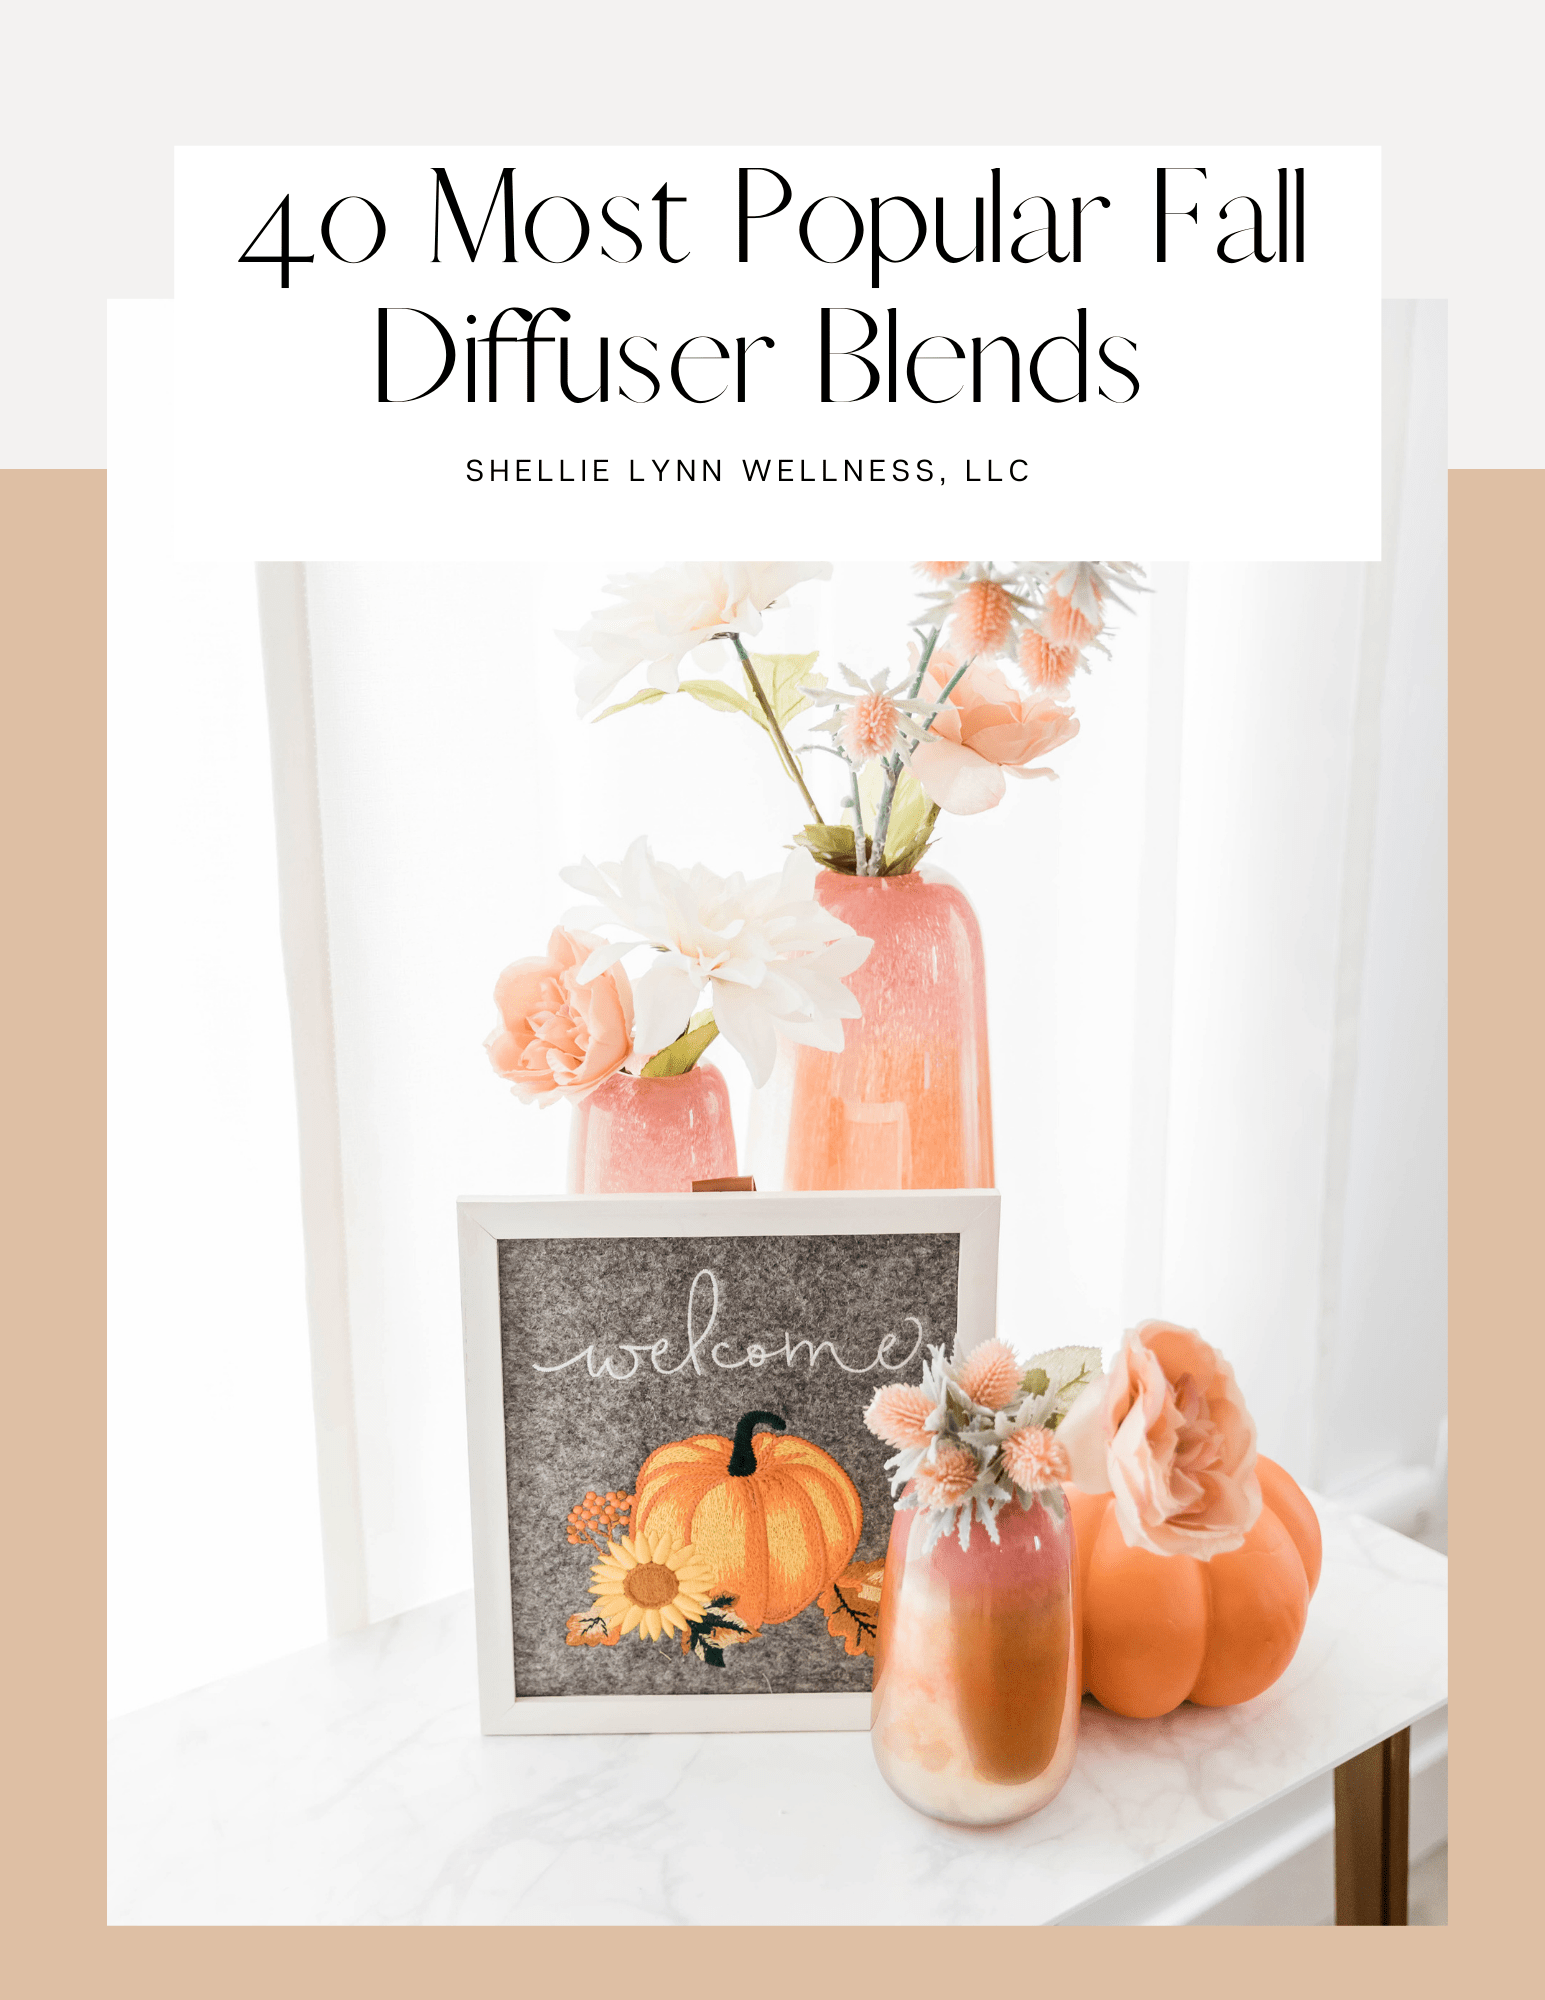 4o Most Popular Fall Diffuser Blends